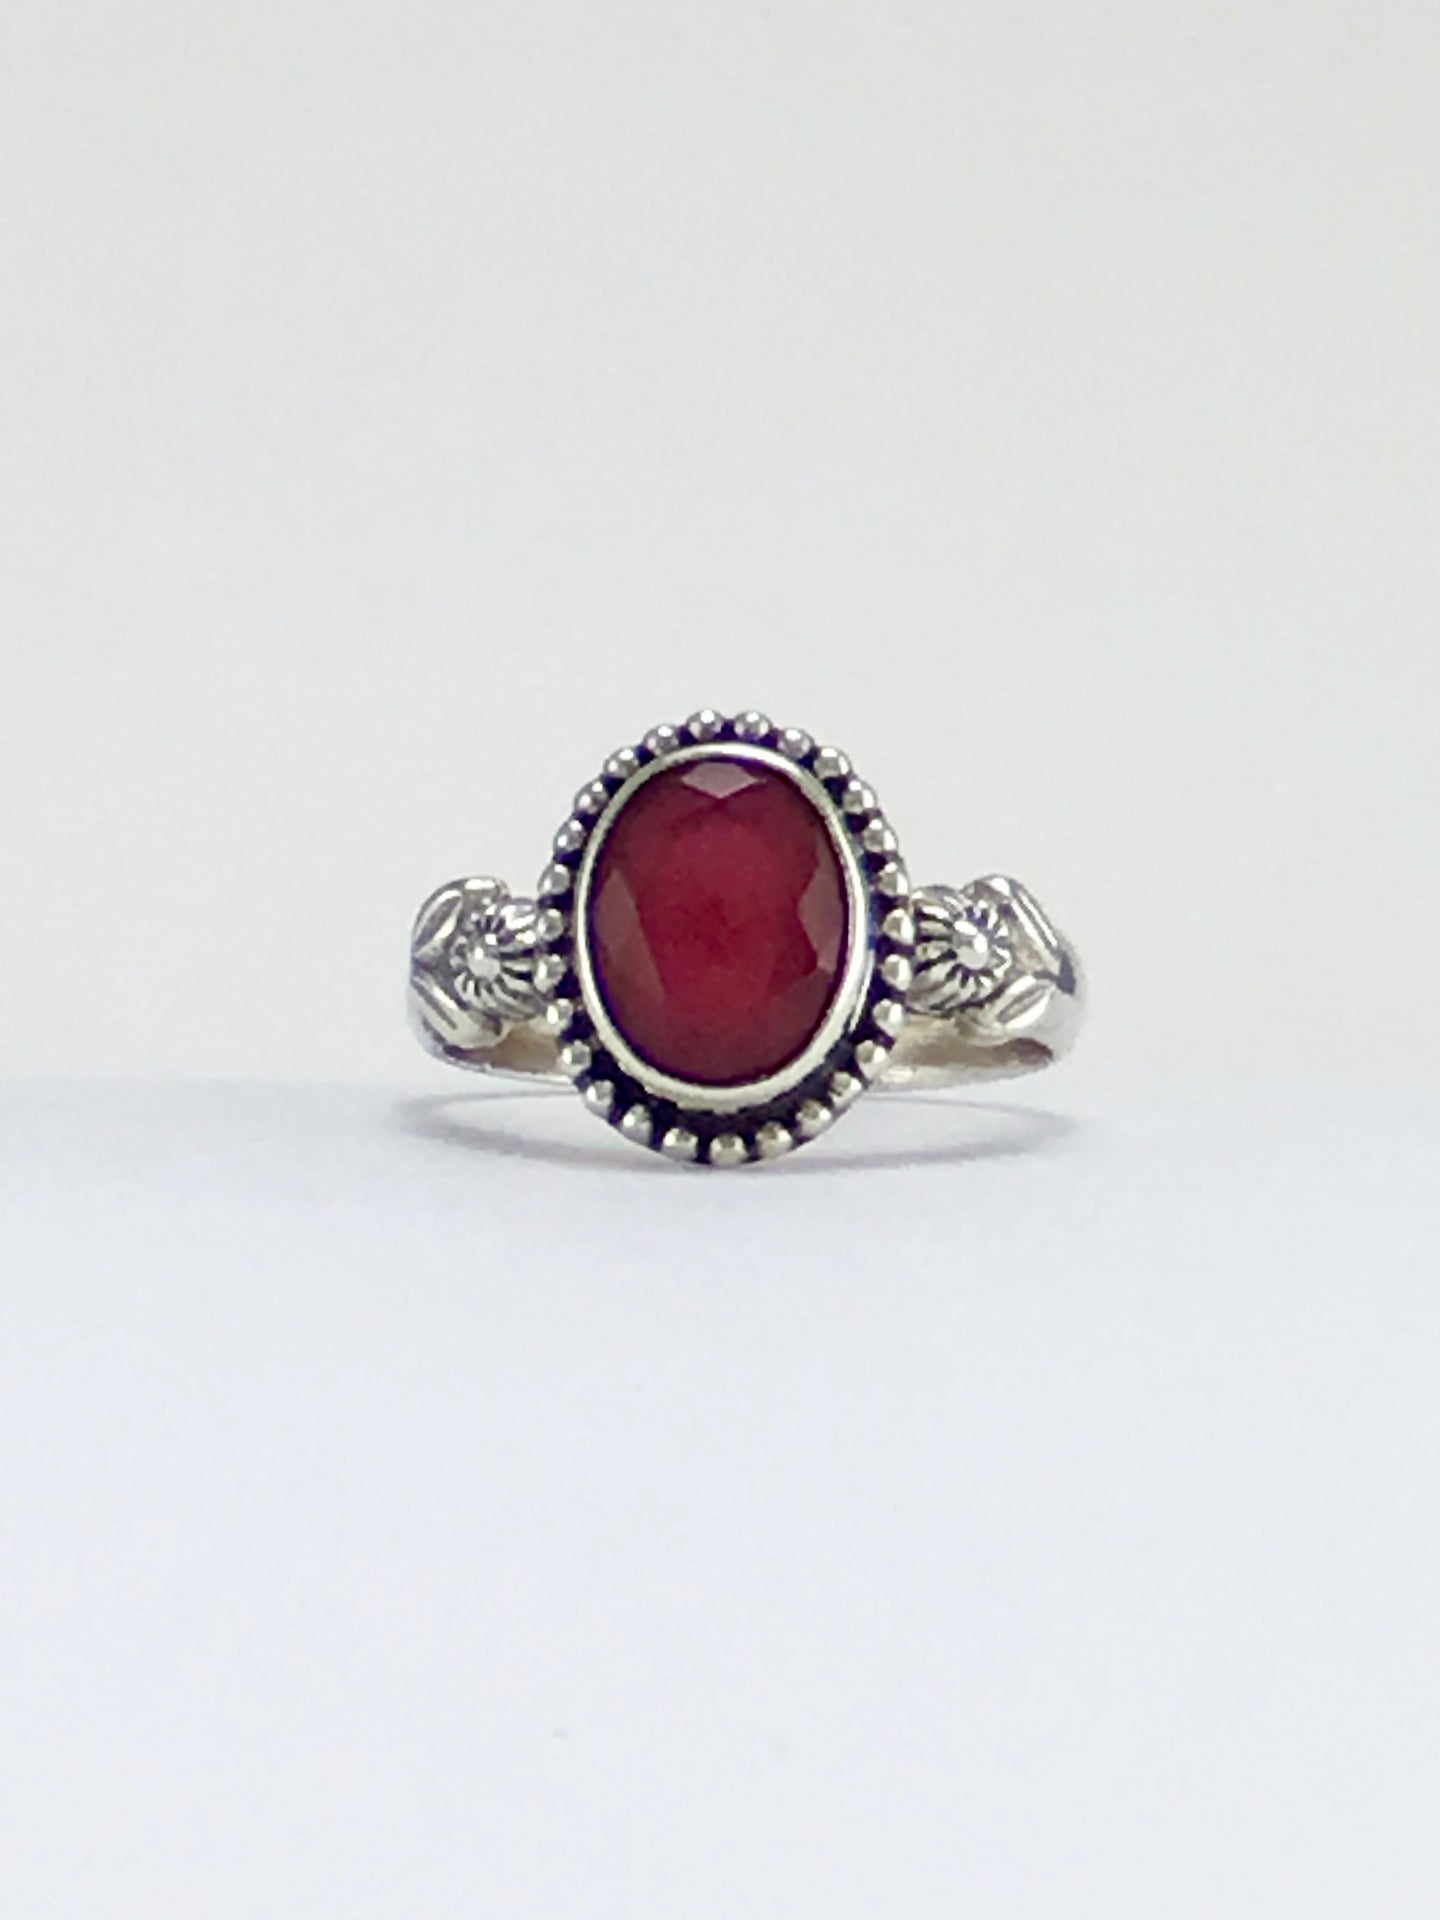 Vintage style floral design ruby ring